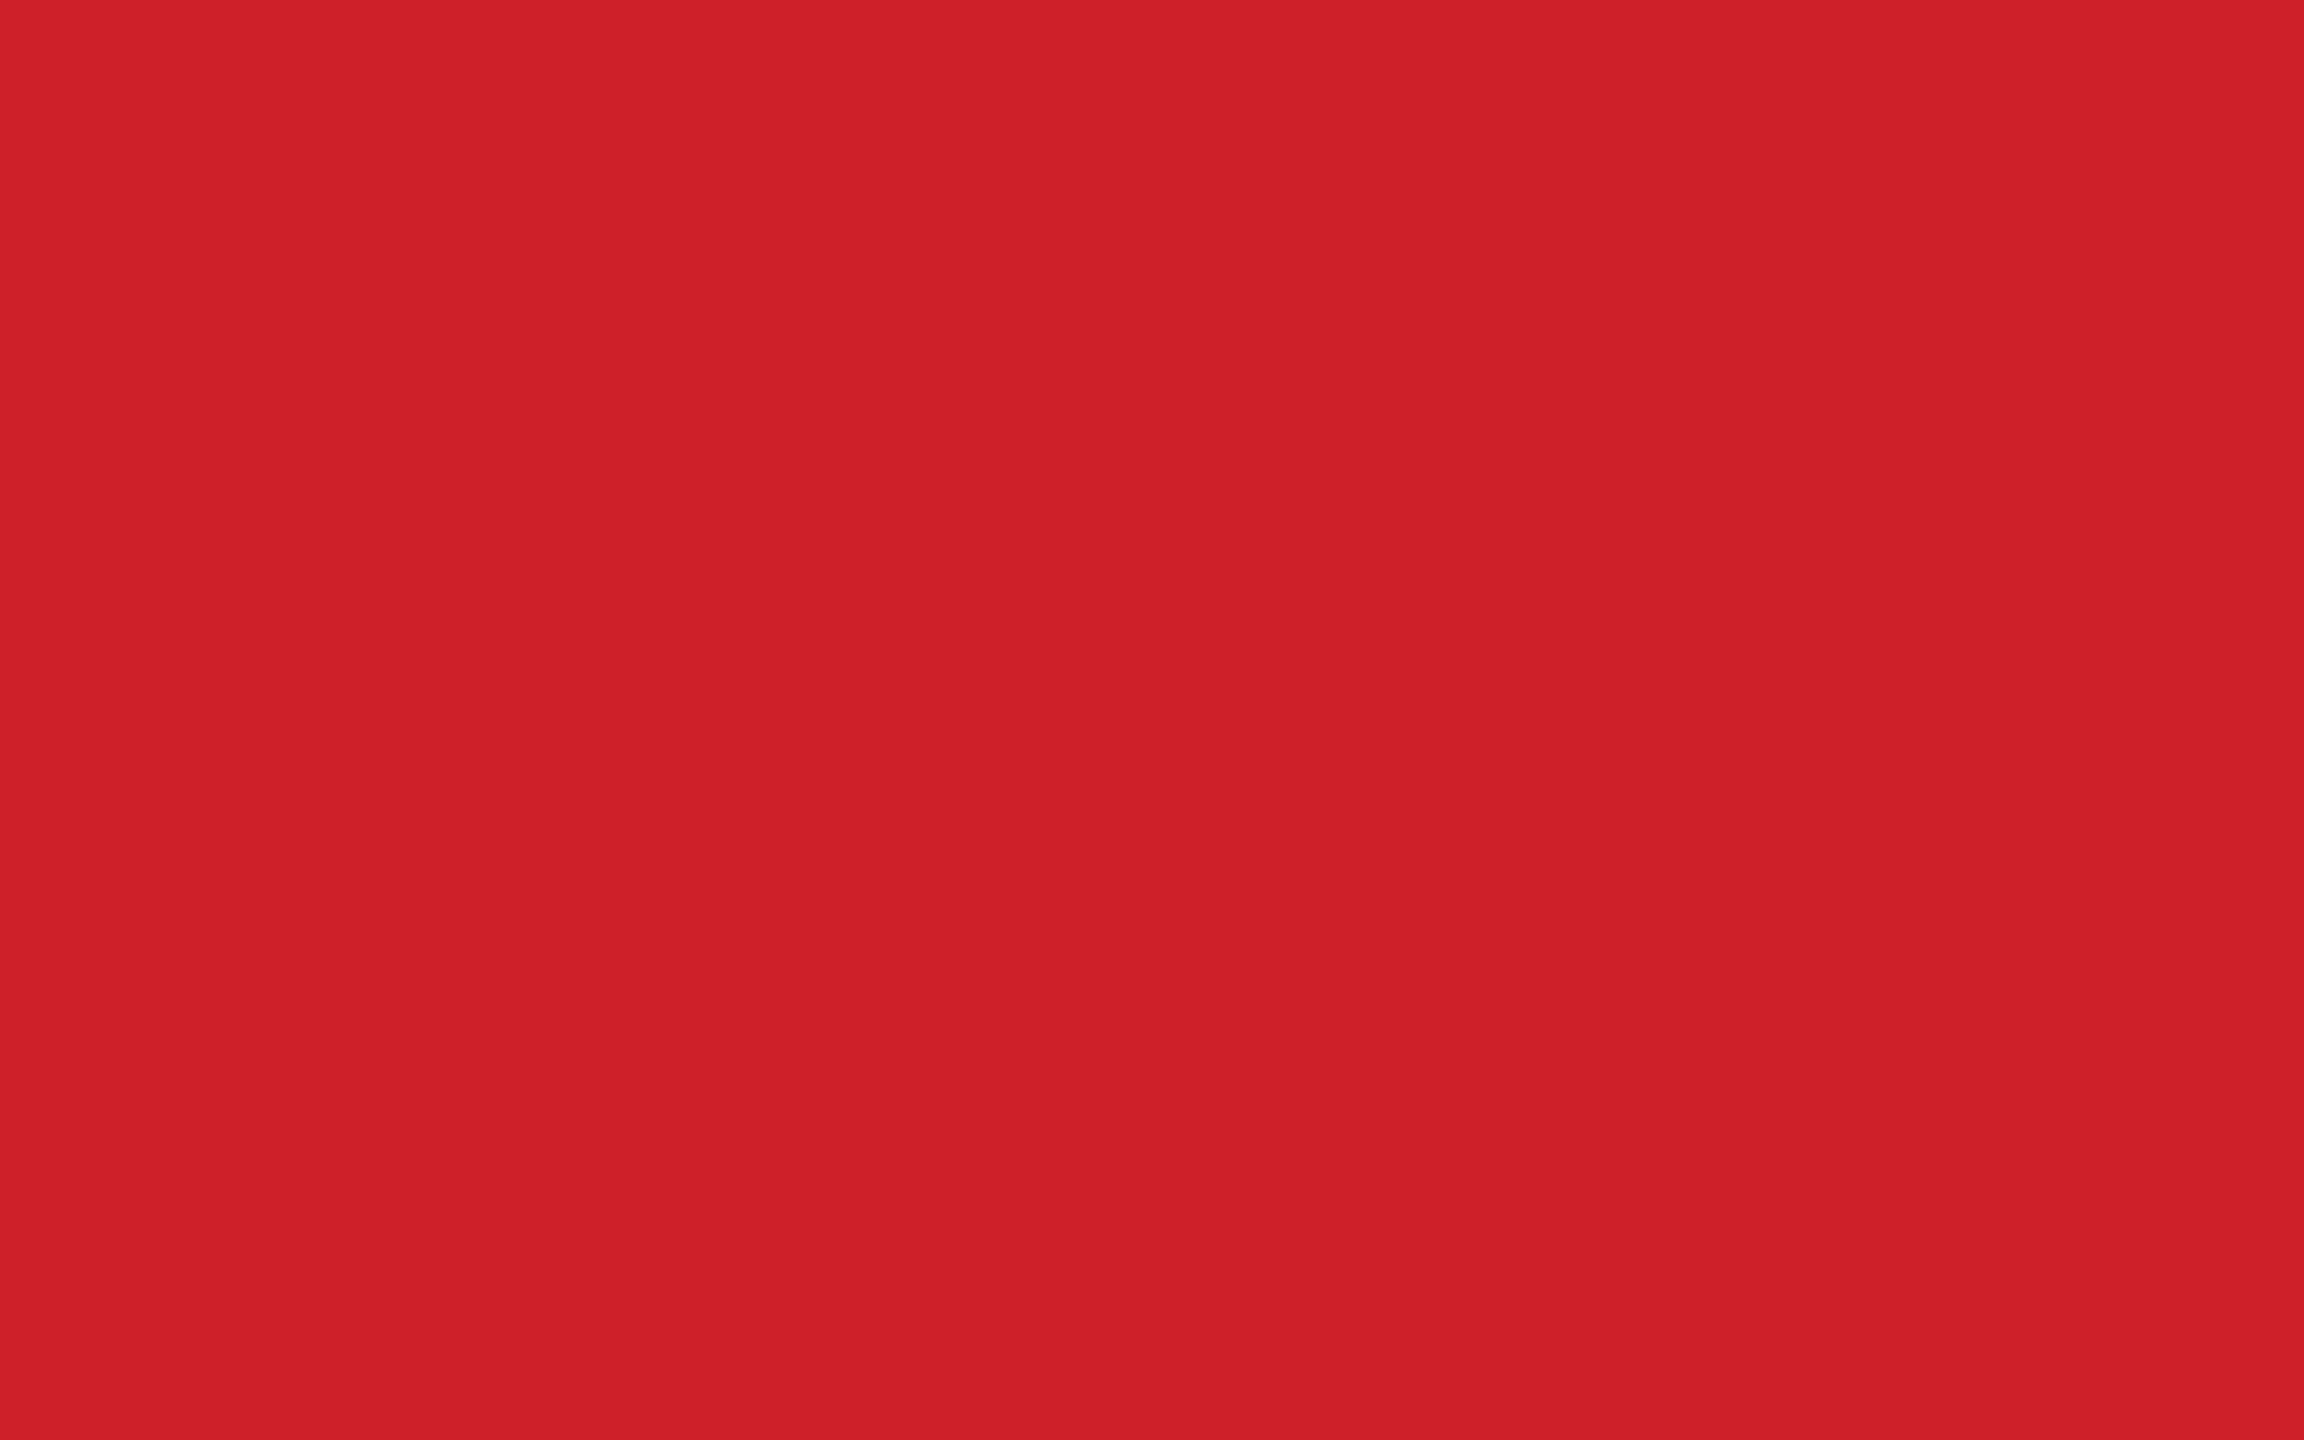 2304x1440 Fire Engine Red Solid Color Background